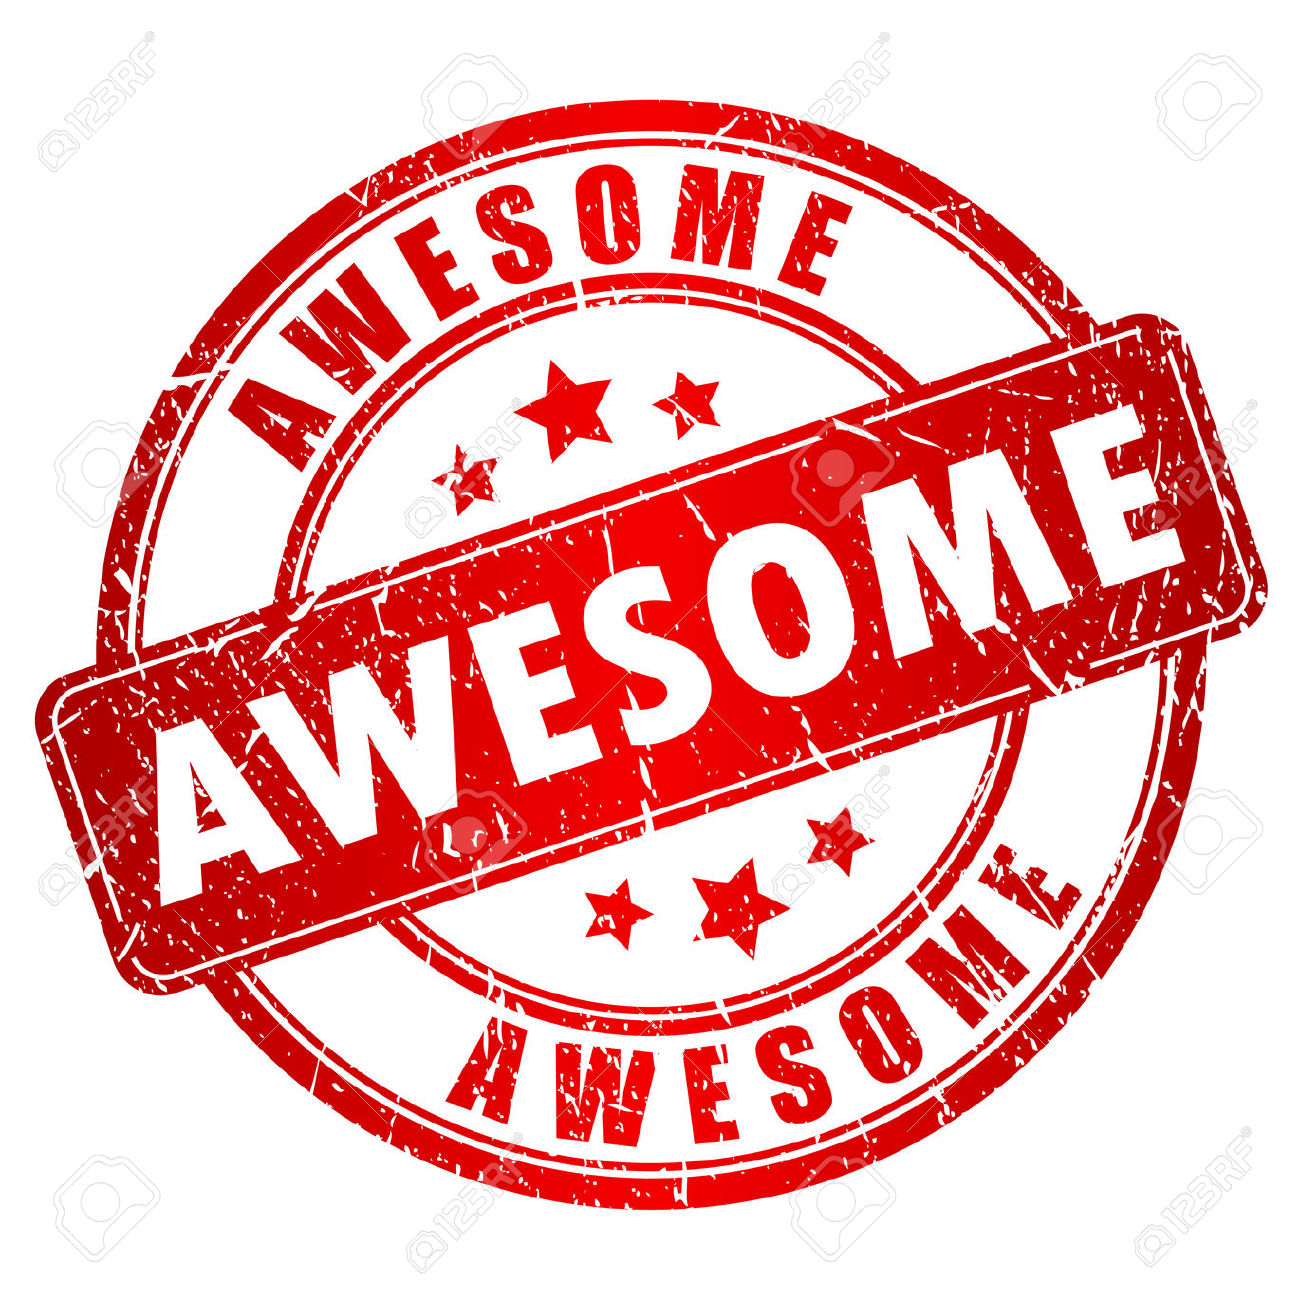 Awesome Job Clipart | Free download on ClipArtMag |Awesome Job Clip Art